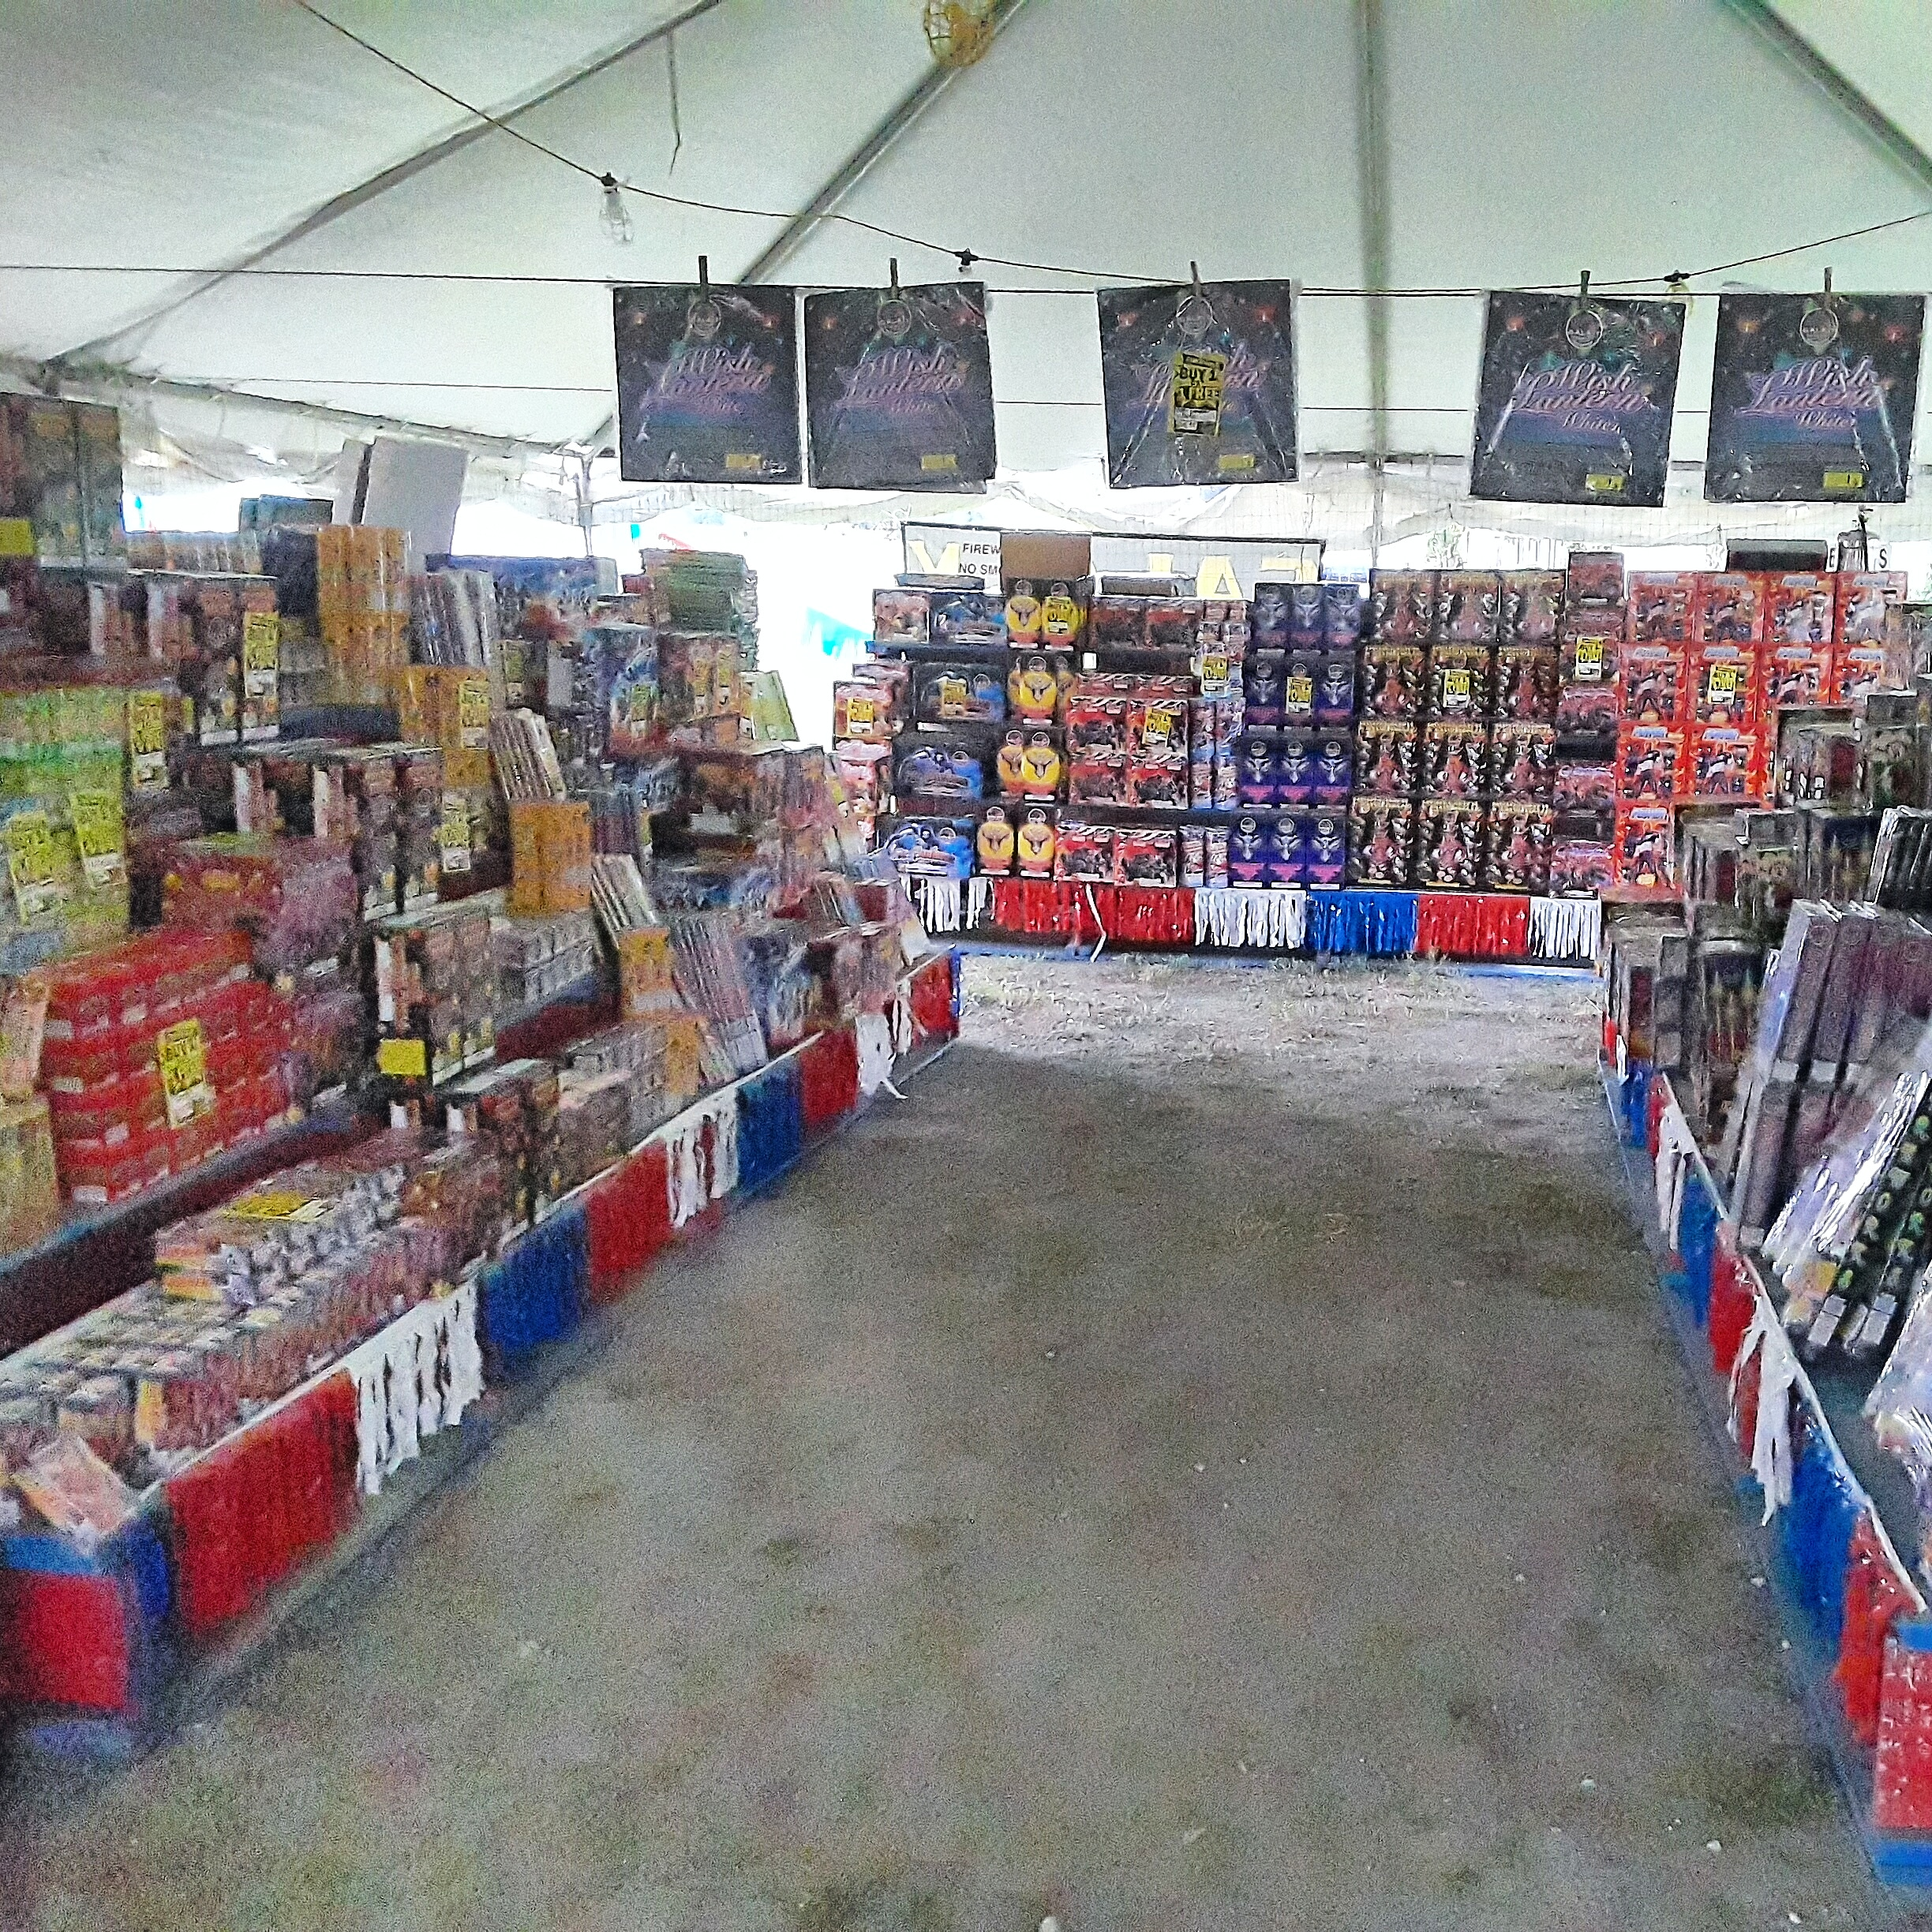 Once you pick-up your fireworks and pay for them. One will have to sign a release hold-harmless legal agreement against this store and the manufacturers. & 2018 Galaxy Fireworks Tents in Metro Orlando Review u2013 Otownfun